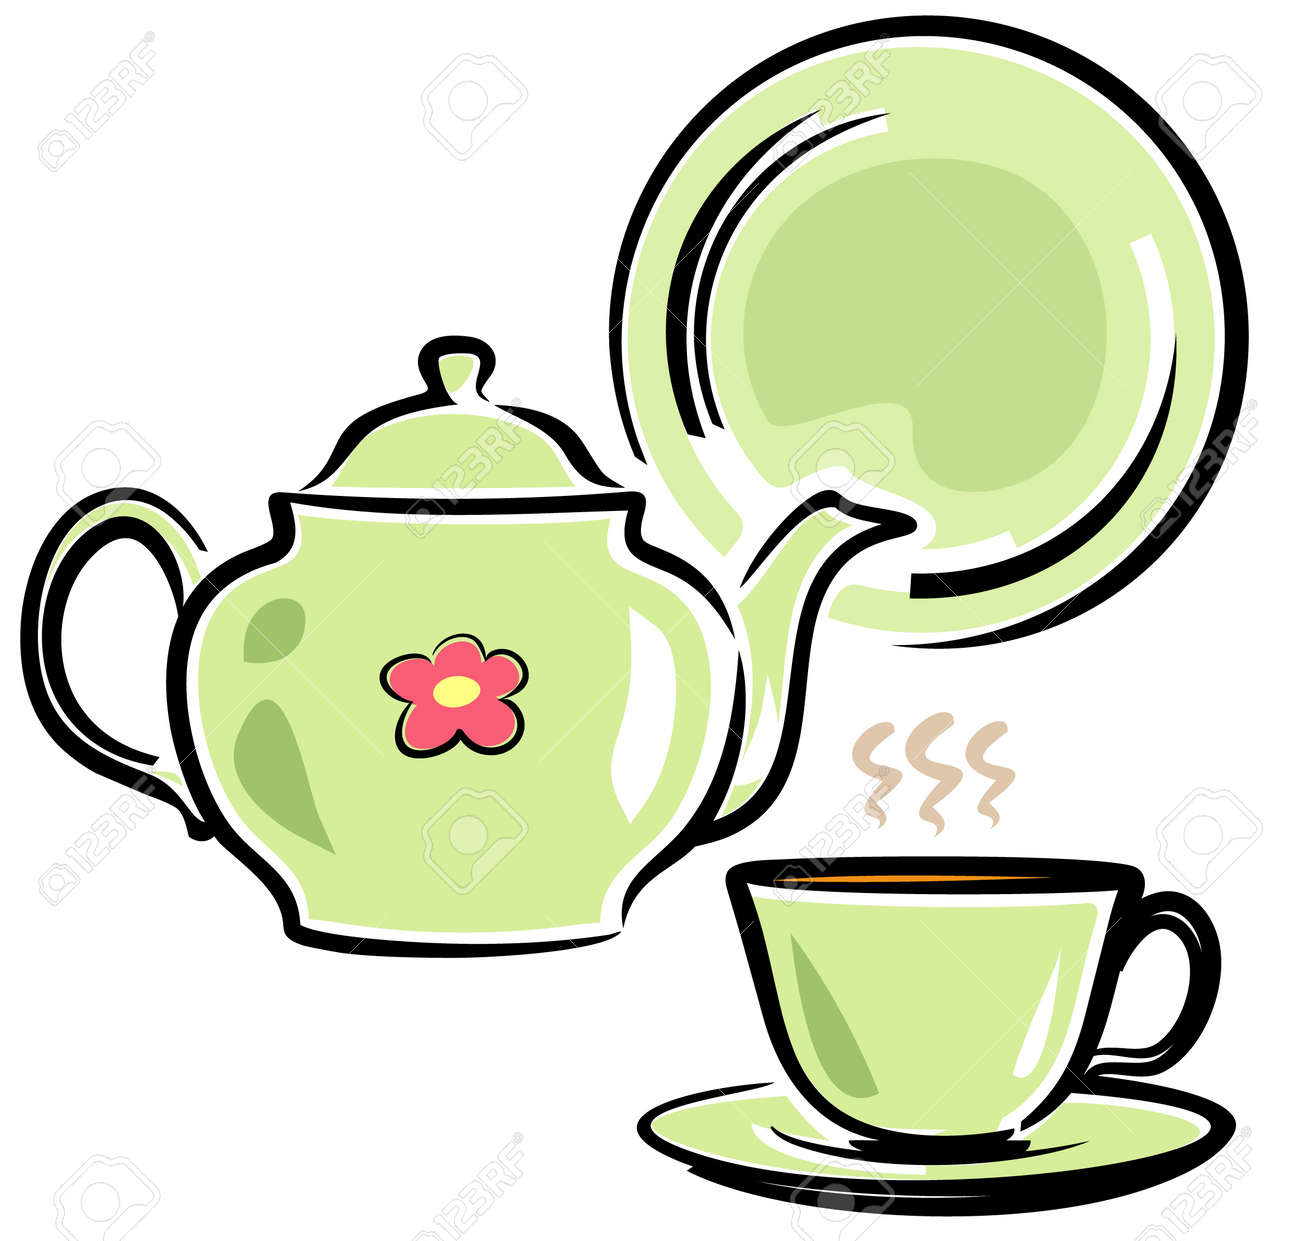 Teapot, Cup and Dish (Vector Illustration) Stock Vector - 4961390